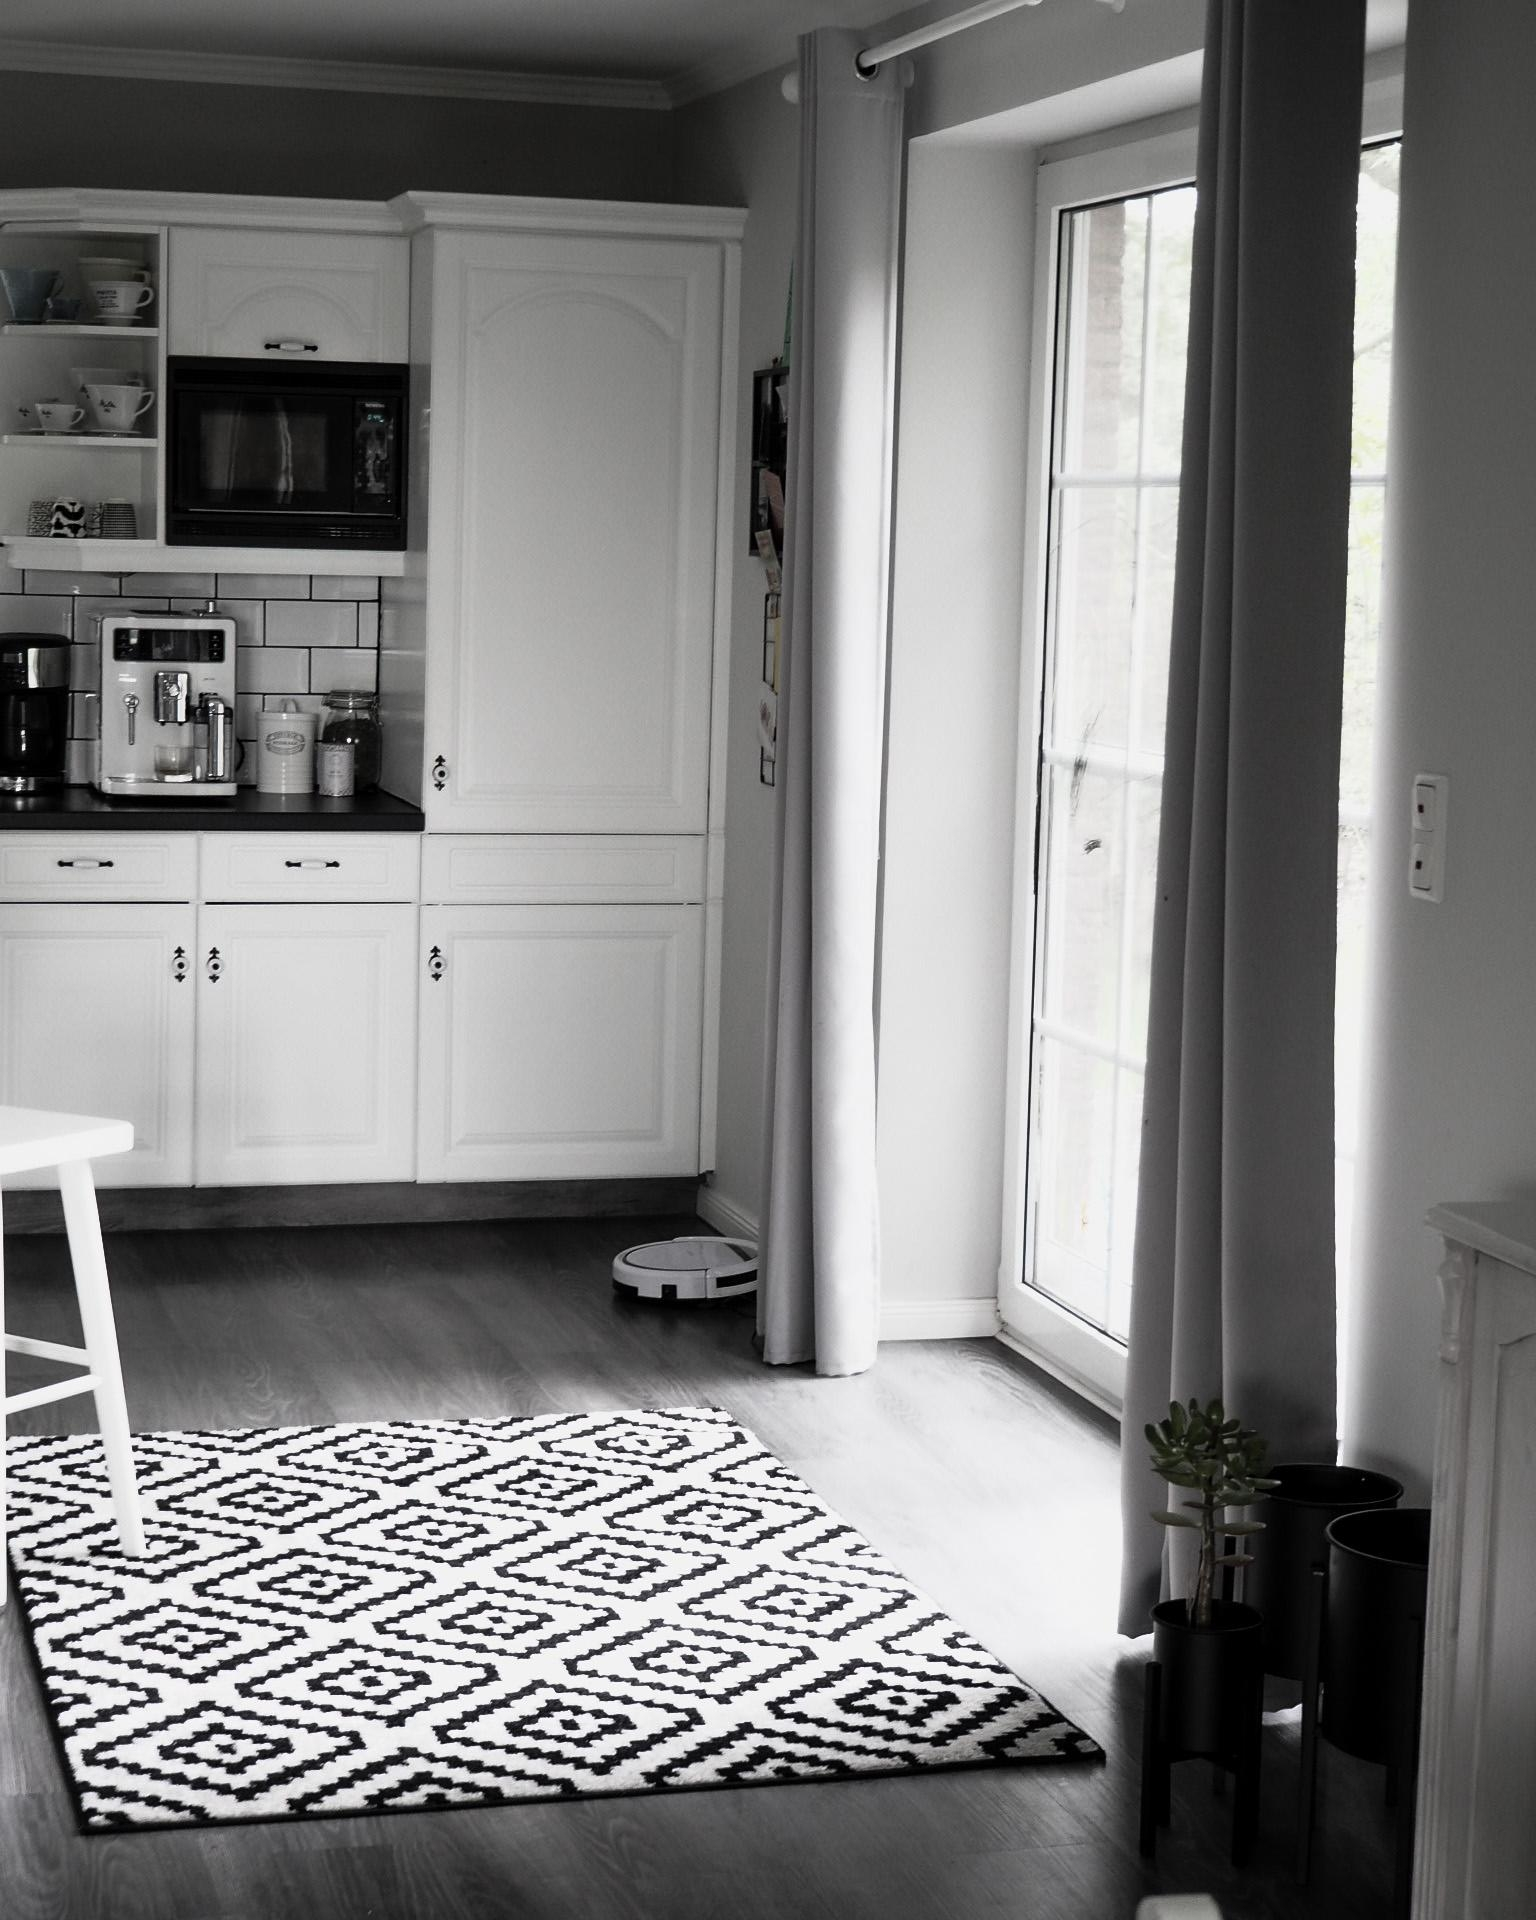 Black and white I love it #kitchen